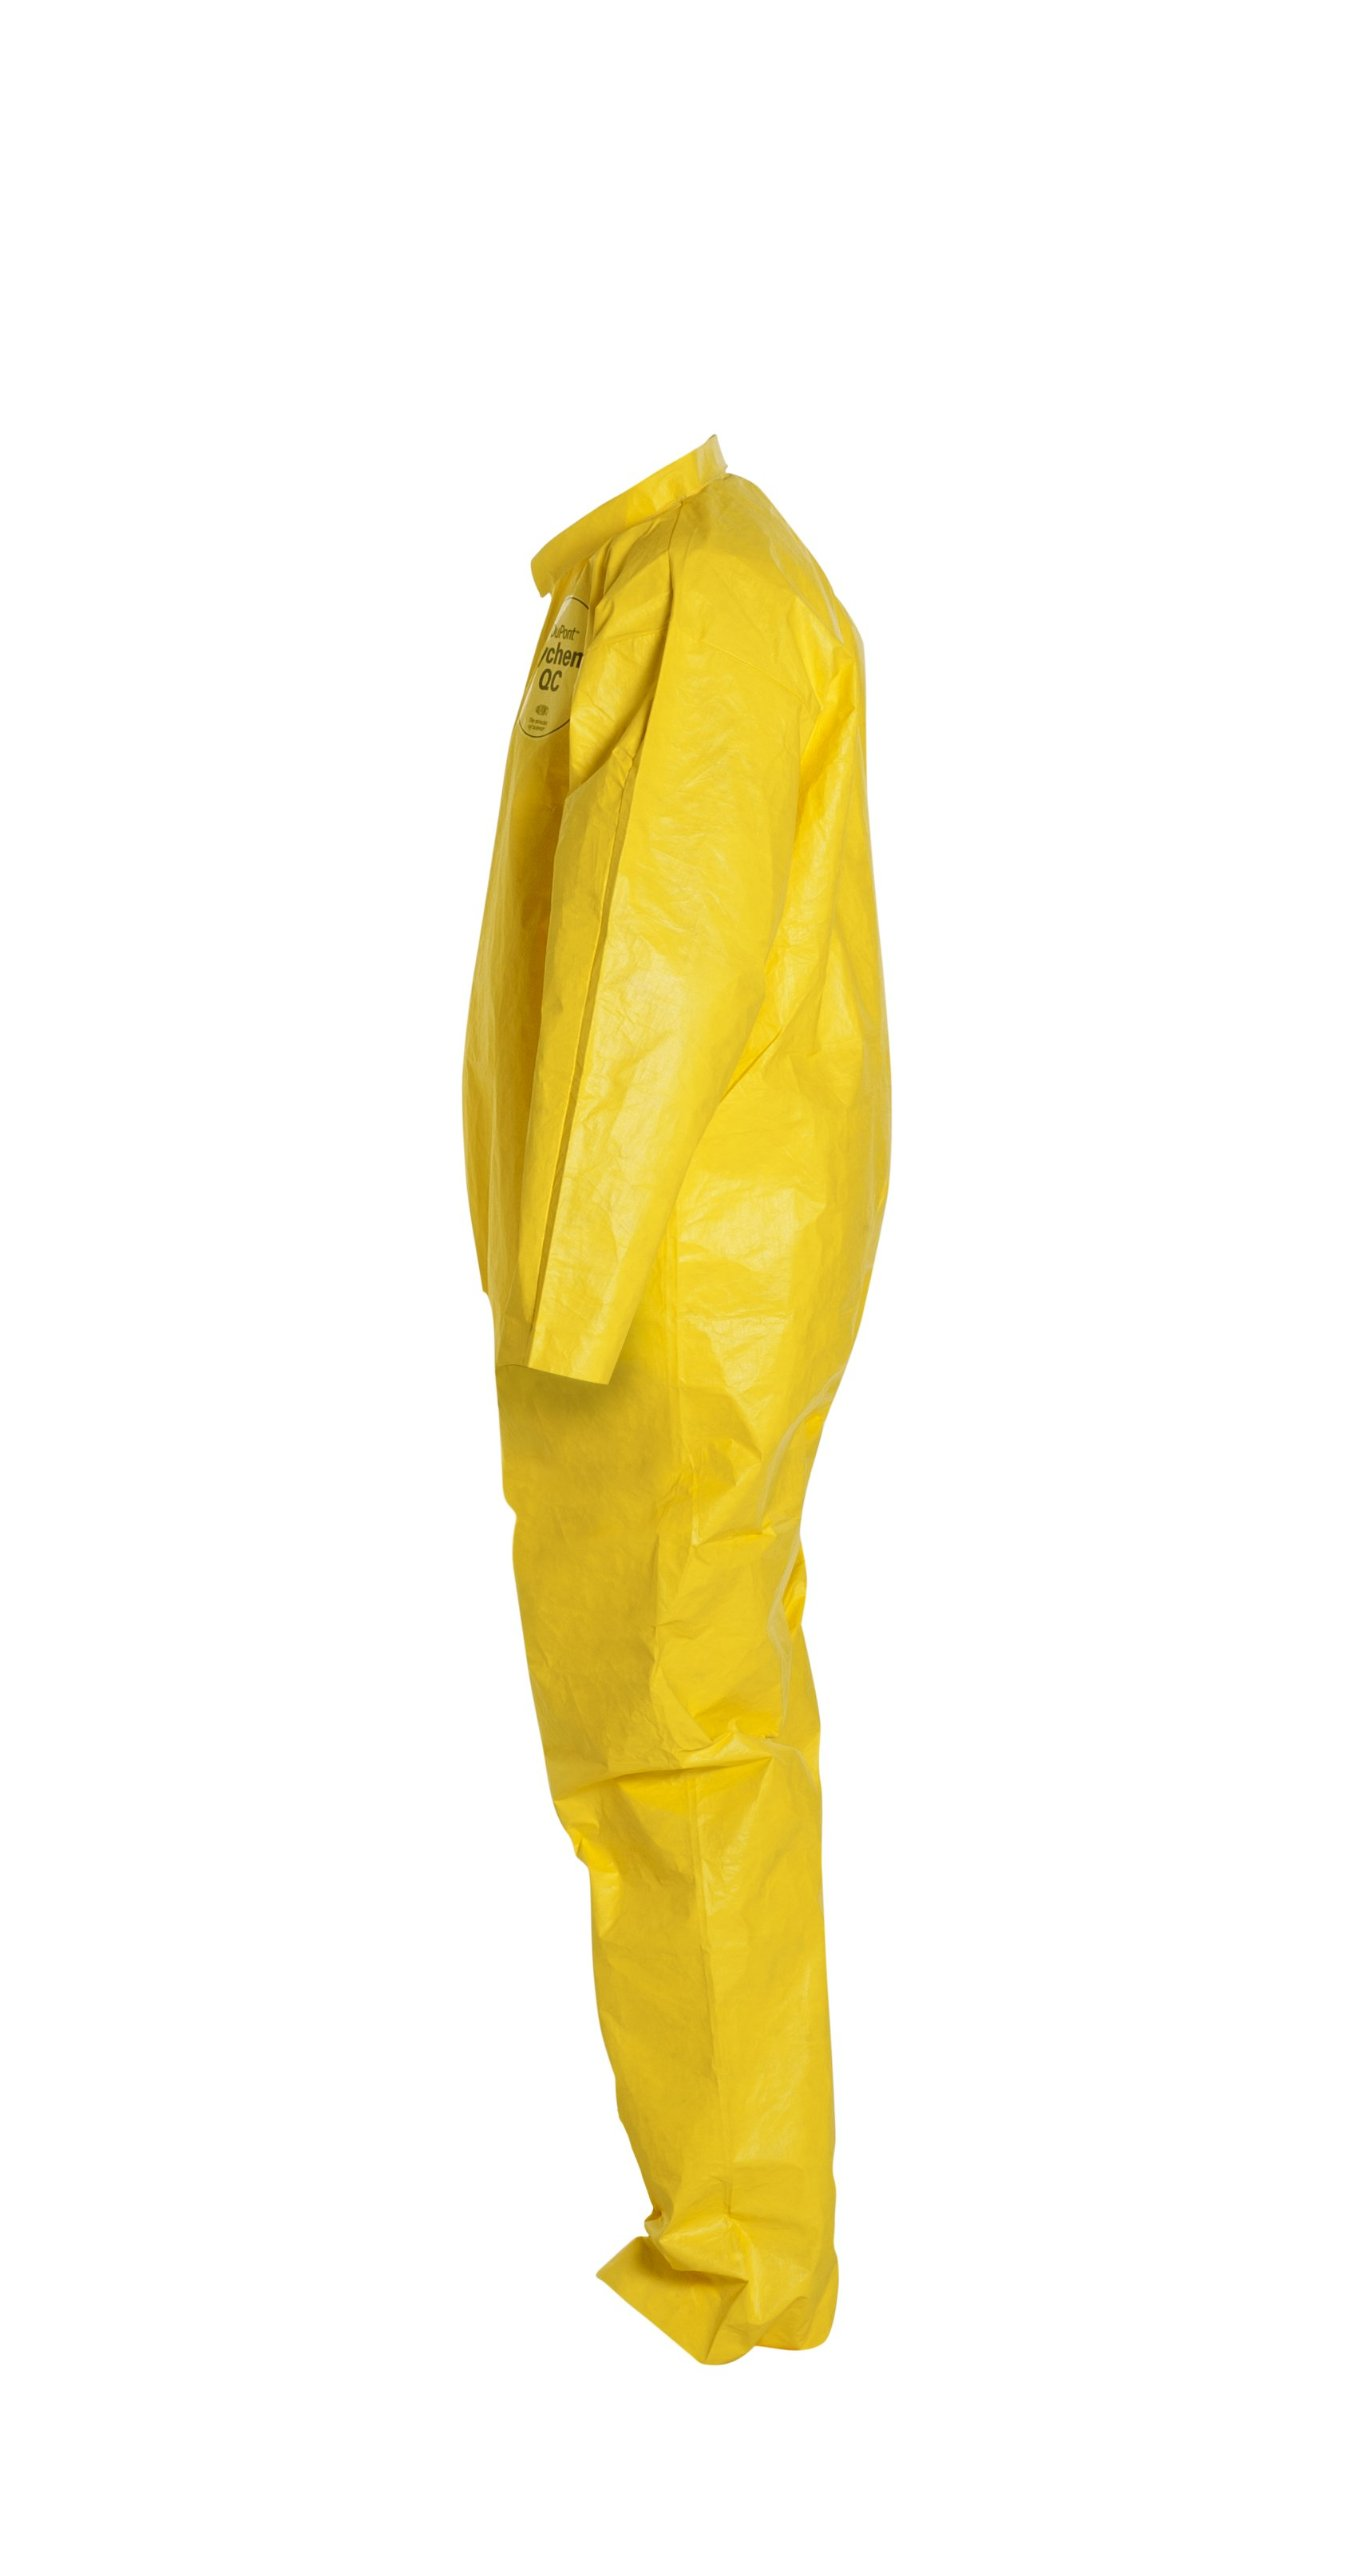 DuPont Tychem 2000 QC120S Disposable Chemical Resistant Coverall with Serged Seams and Open Cuff, Yellow, Large (Pack of 12)